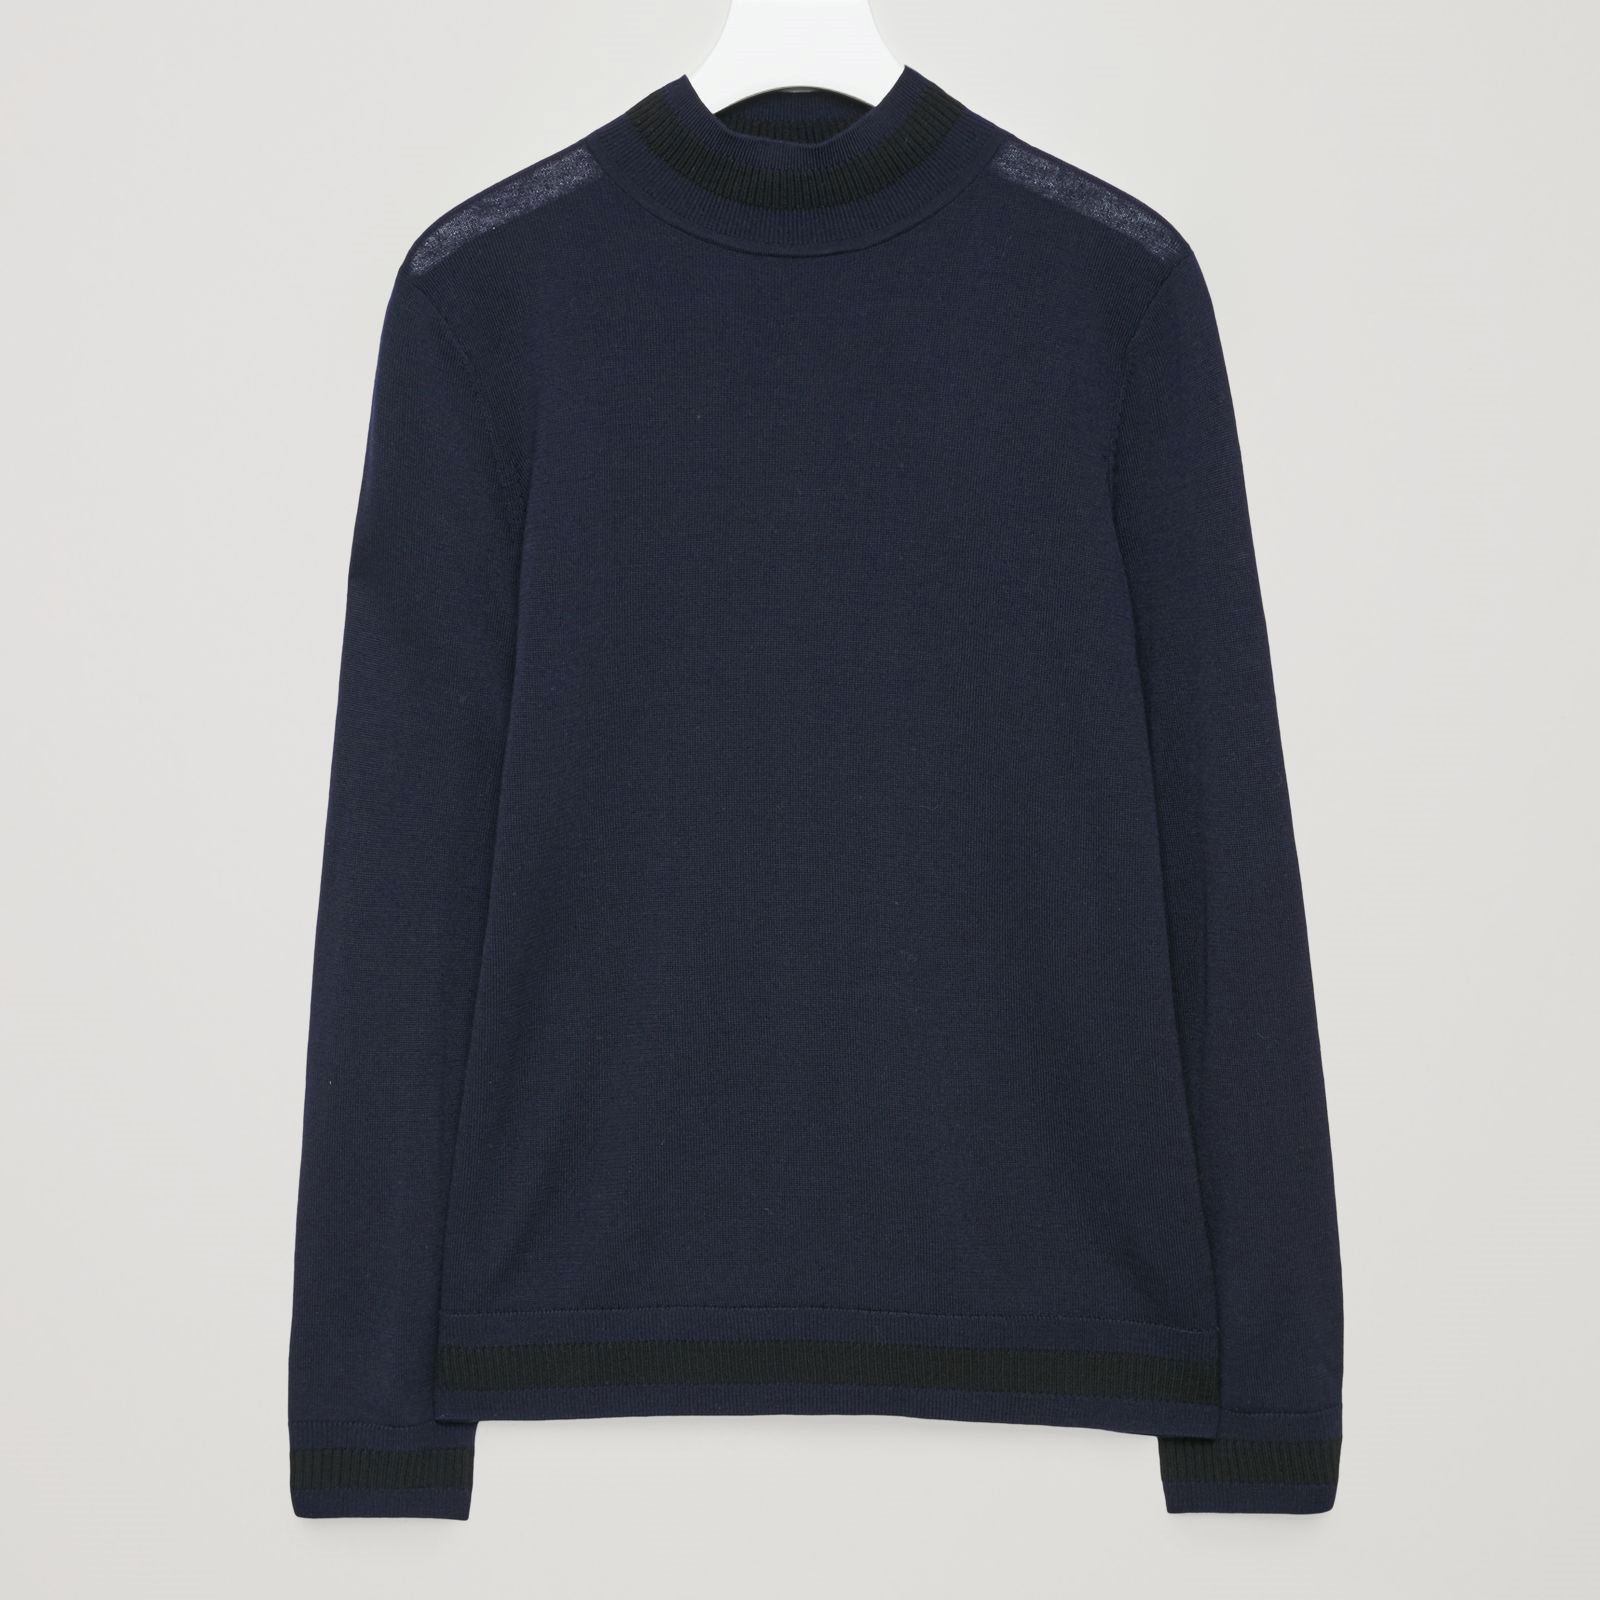 COS☆KNITTED TOP WITH CONTRAST RIB DETAIL / navy